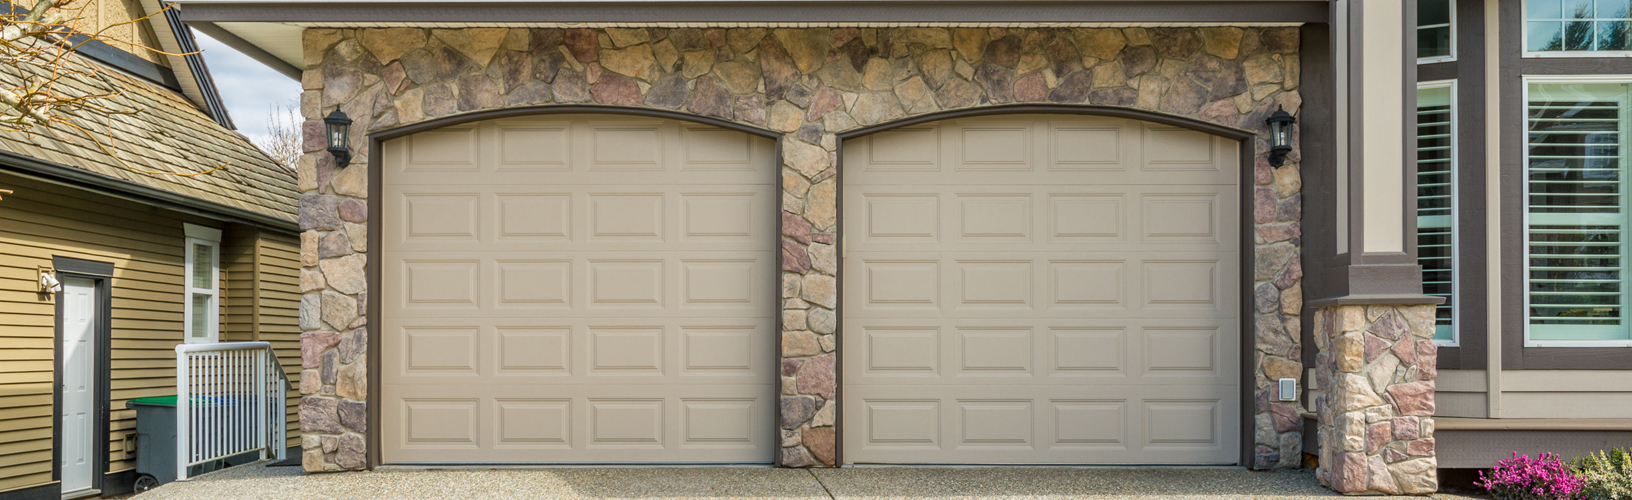 Garage Doors Austin Tx Austin Garage Door Solutions